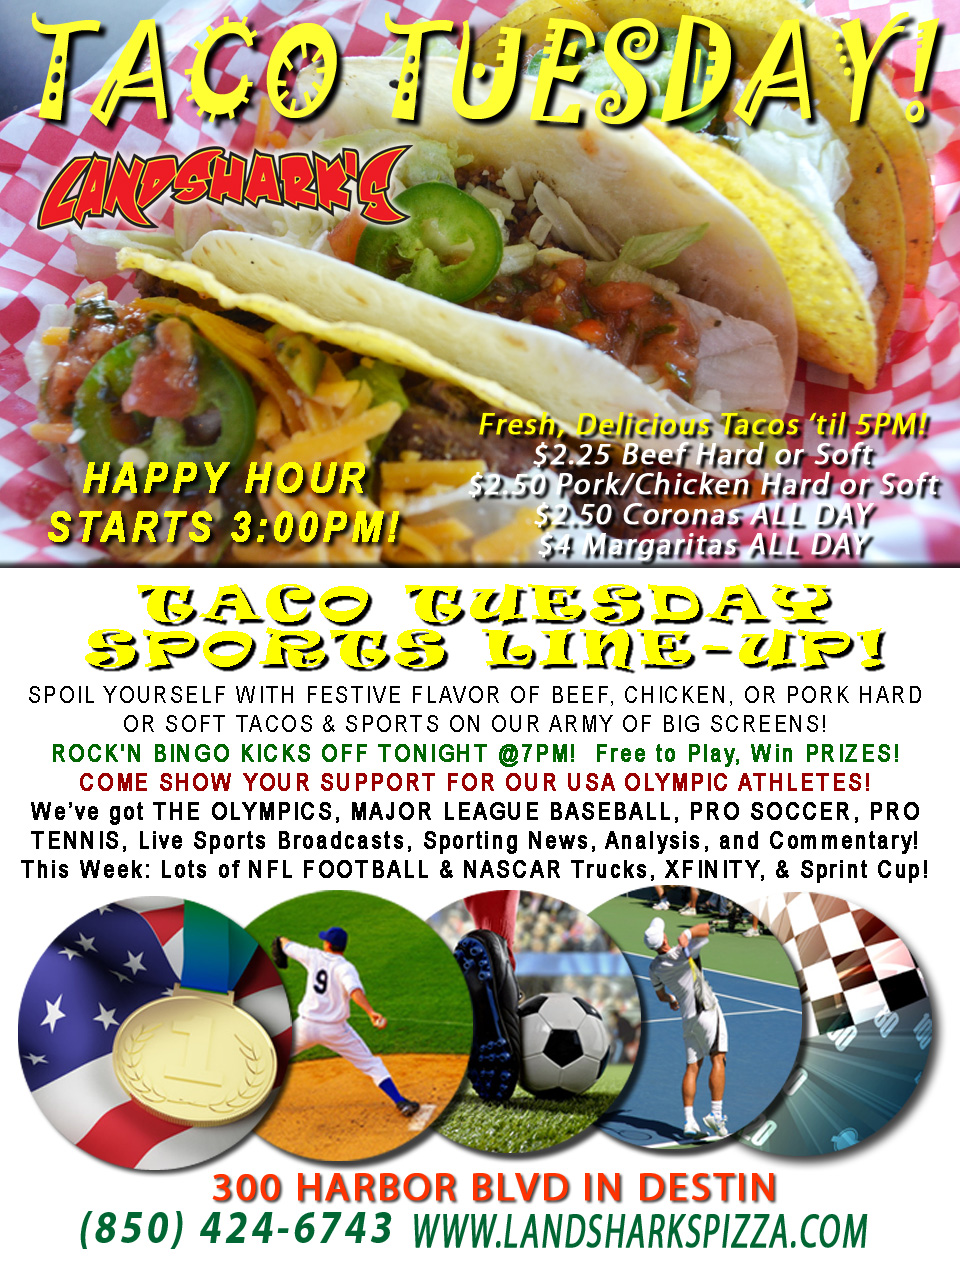 Destin FL Taco Tuesday at Landshark's Pizza 08-16-16